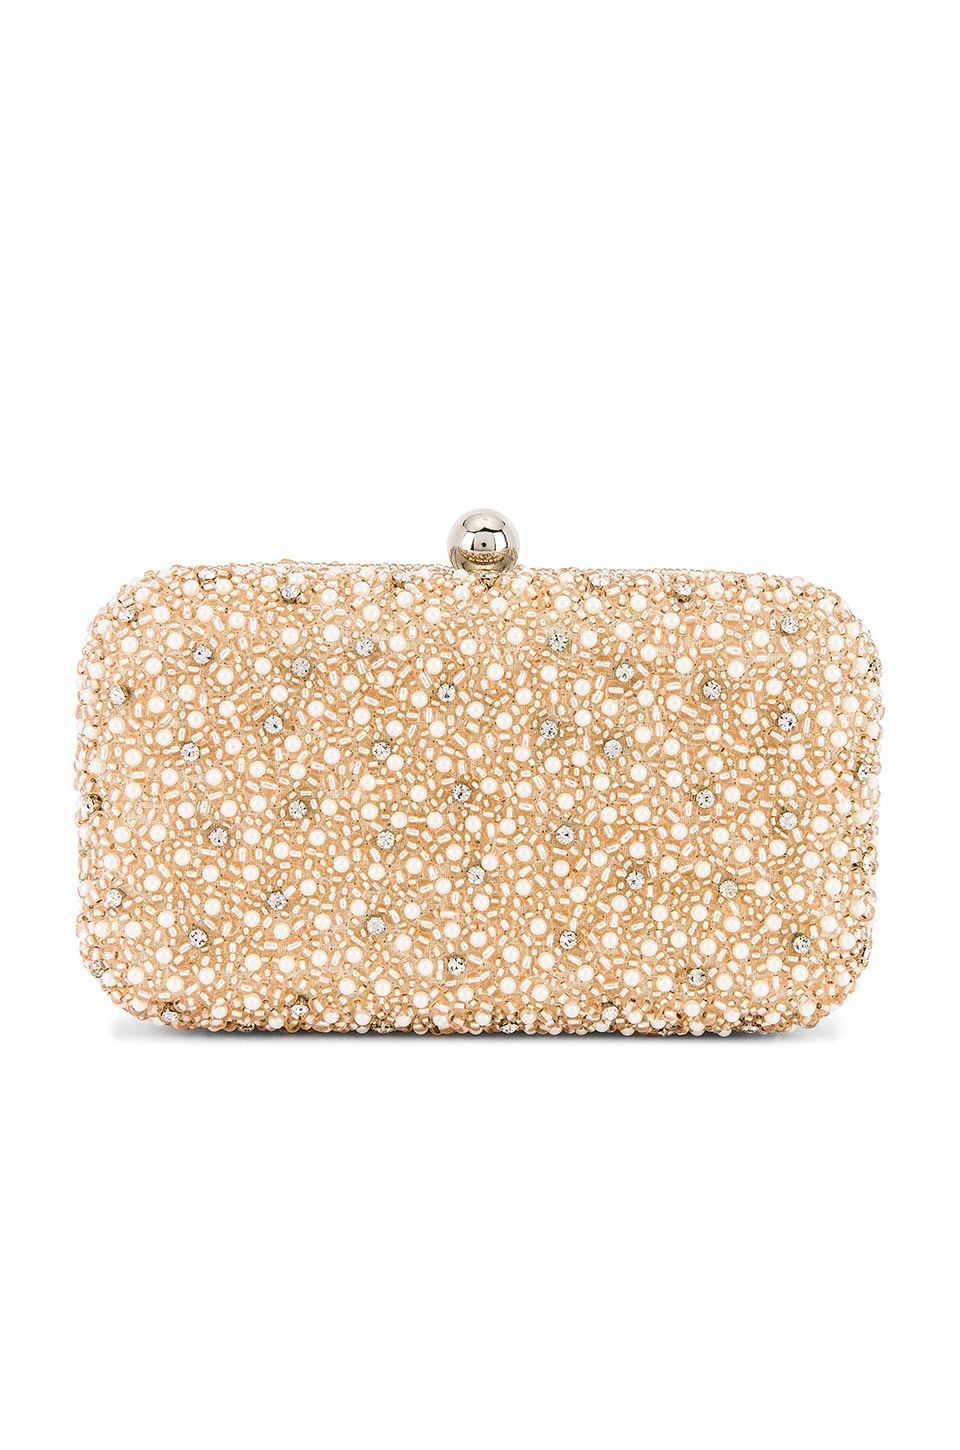 From St Xavier Mini Pearl Box Clutch in Champagne